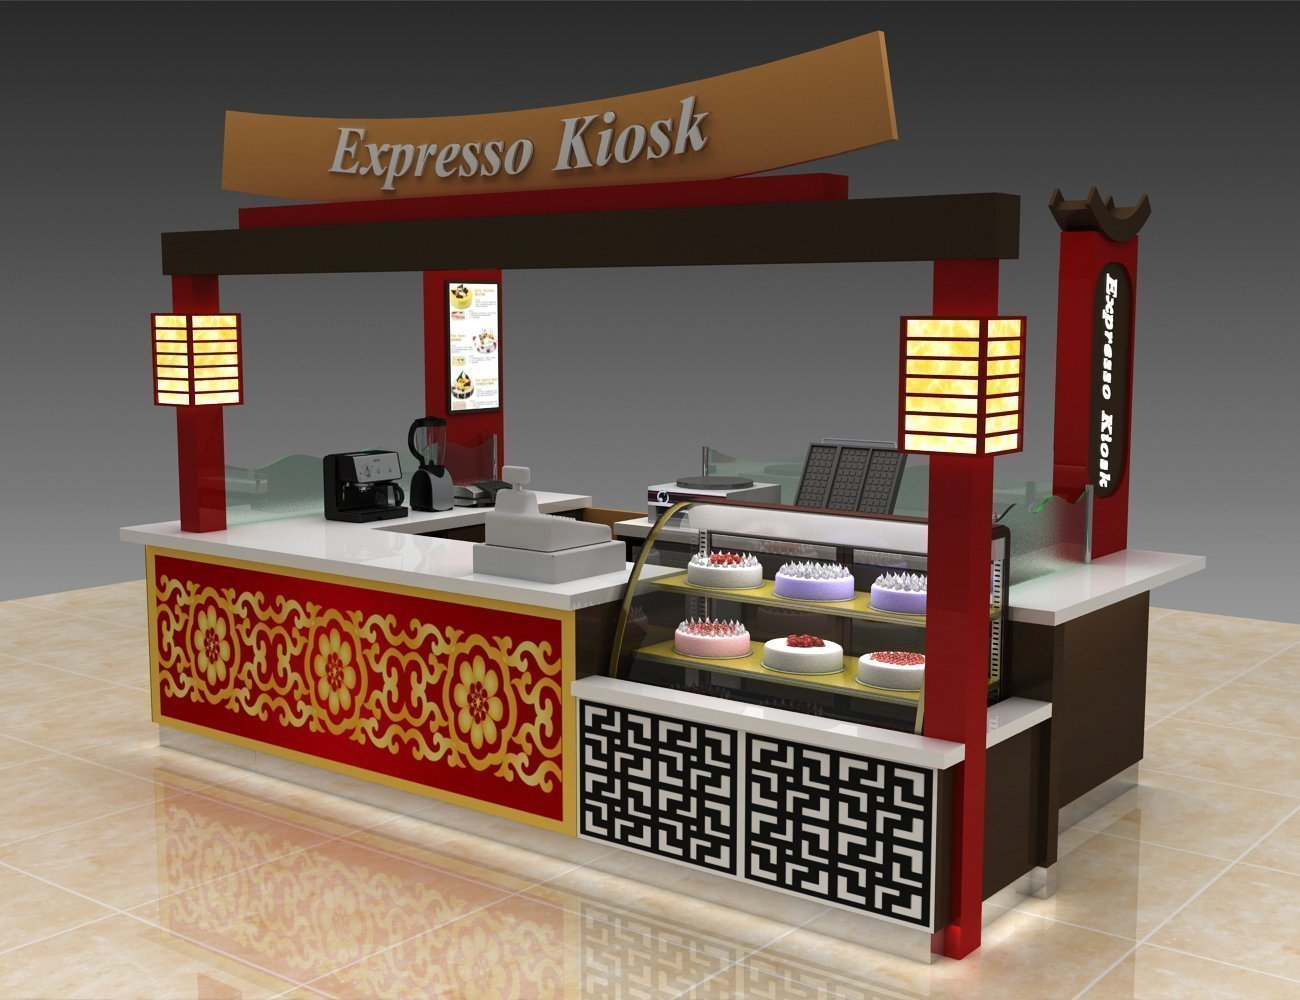 Mall food kiosk design for sale | Japanese traditional food hut for